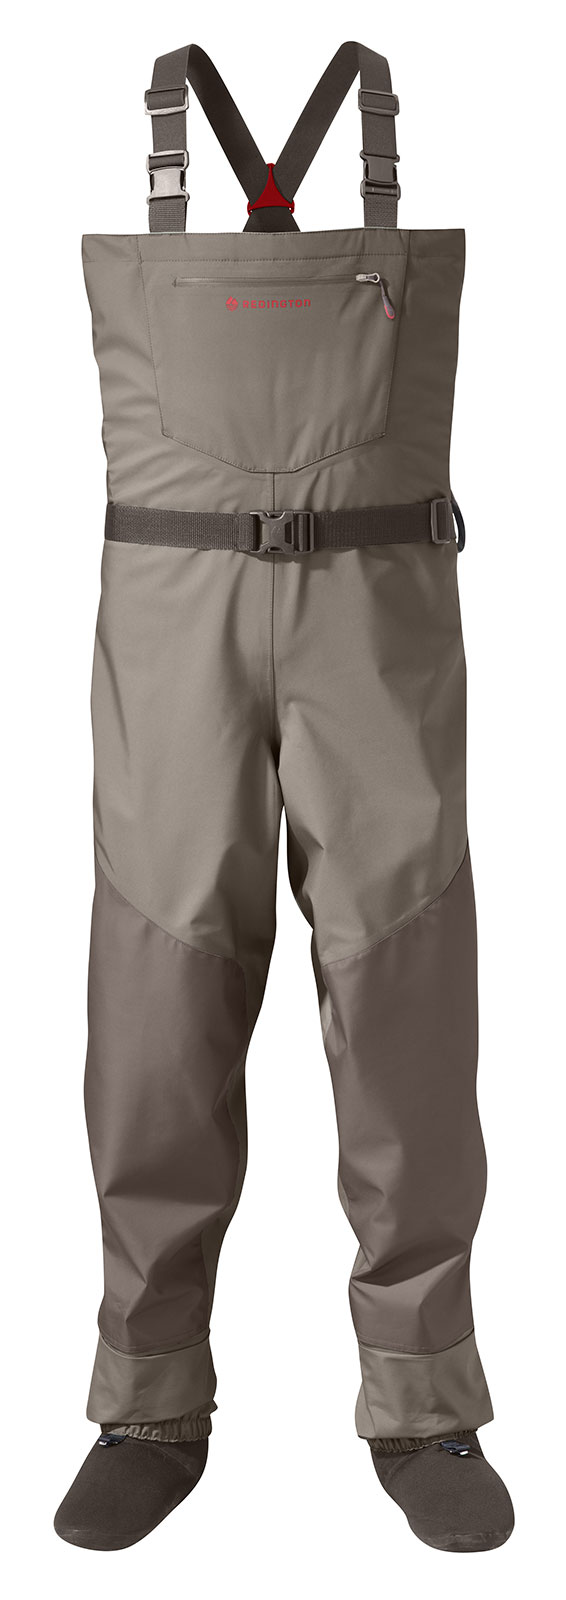 Click here to buy Redington Palix River Waders.